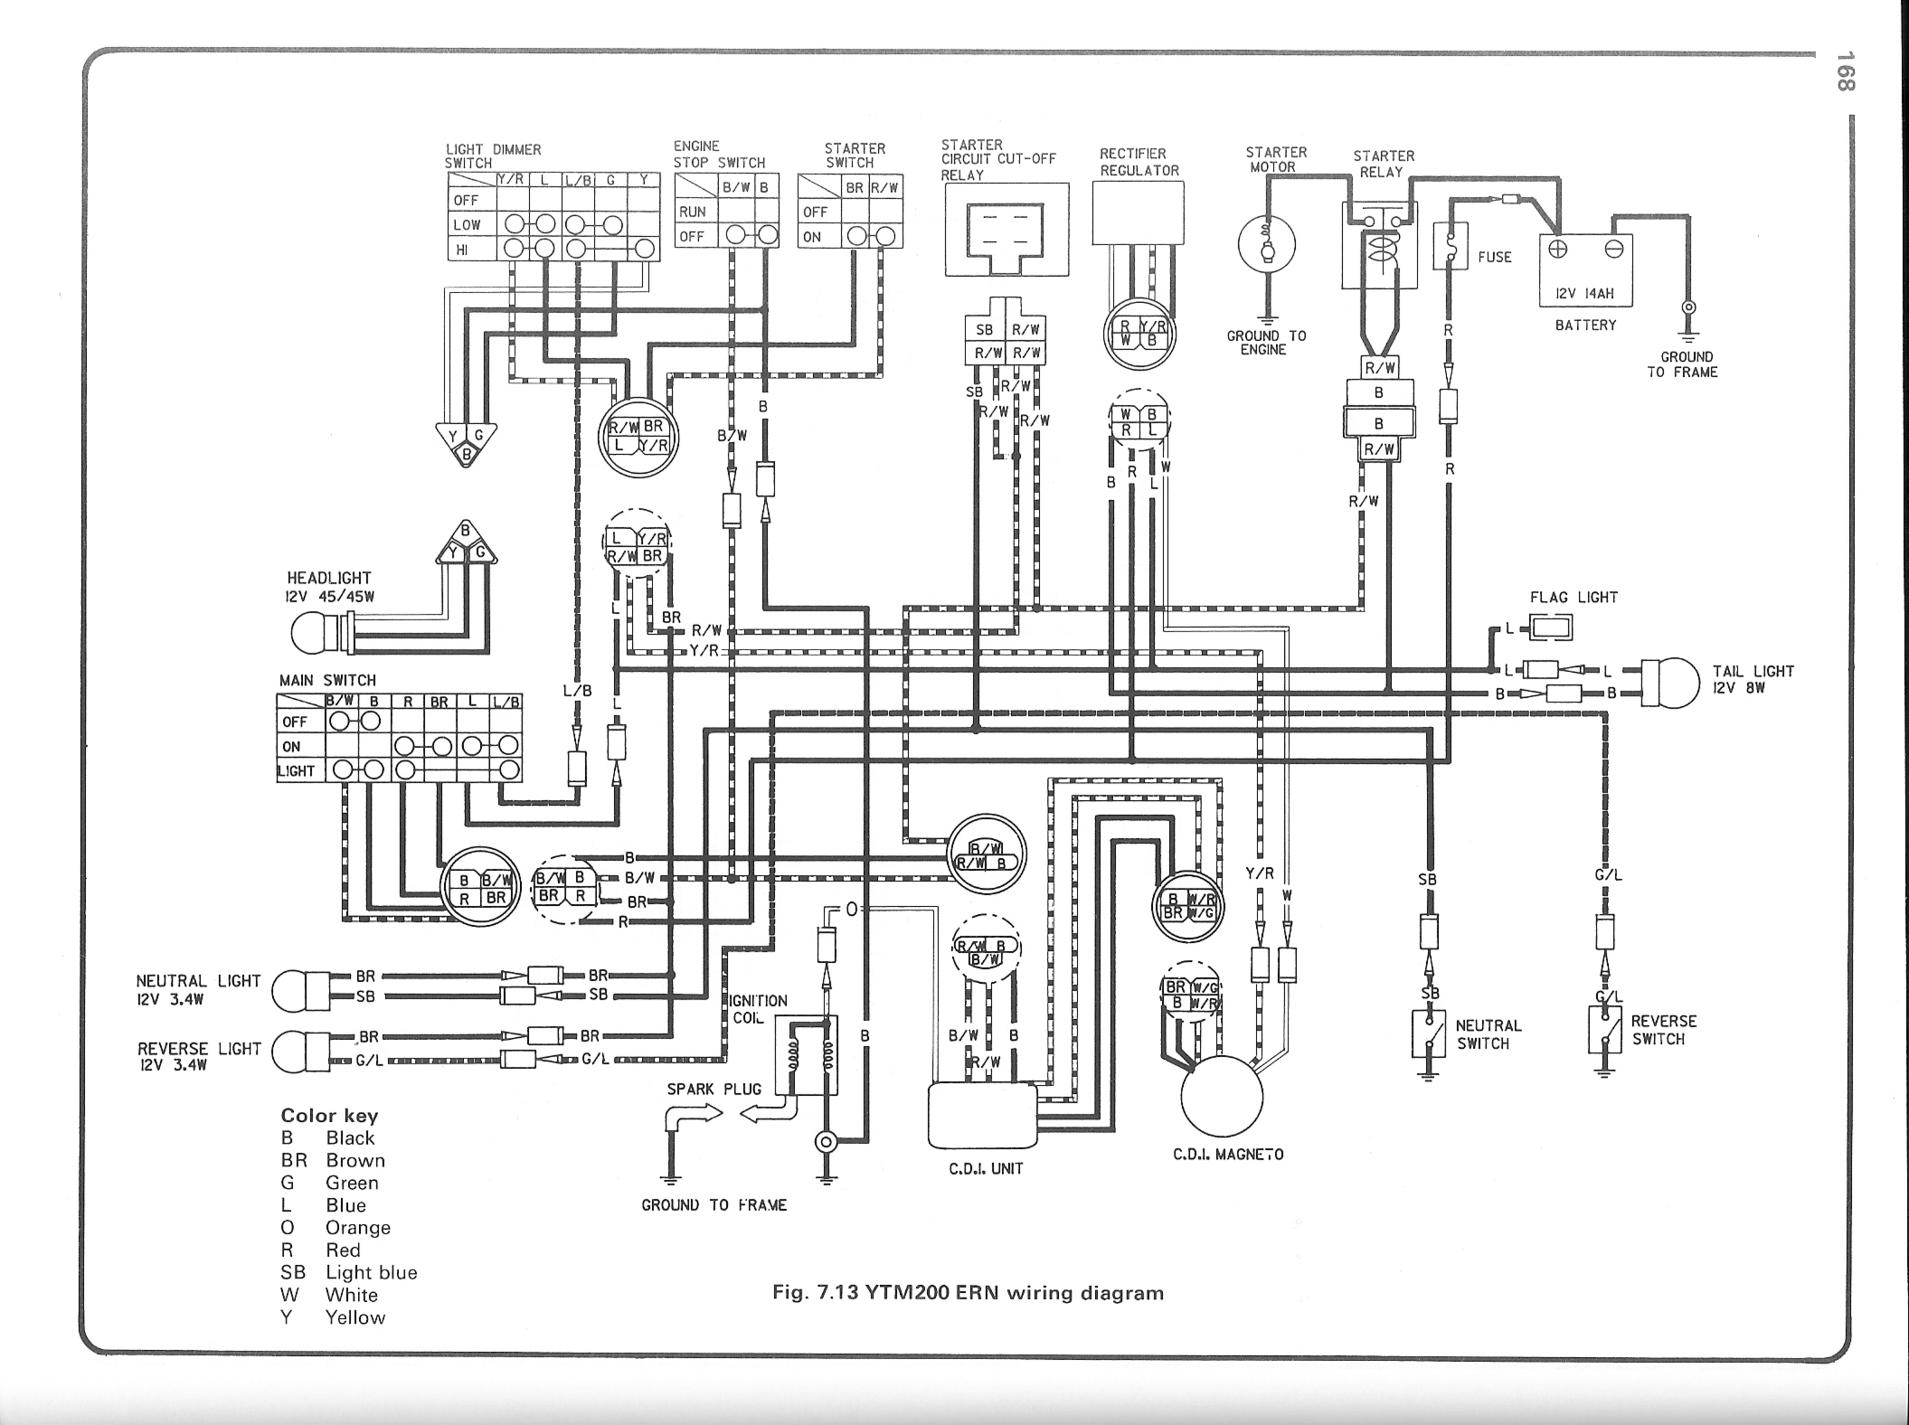 188 Yamaha Wiring Diagram Section on kawasaki atv wiring diagram